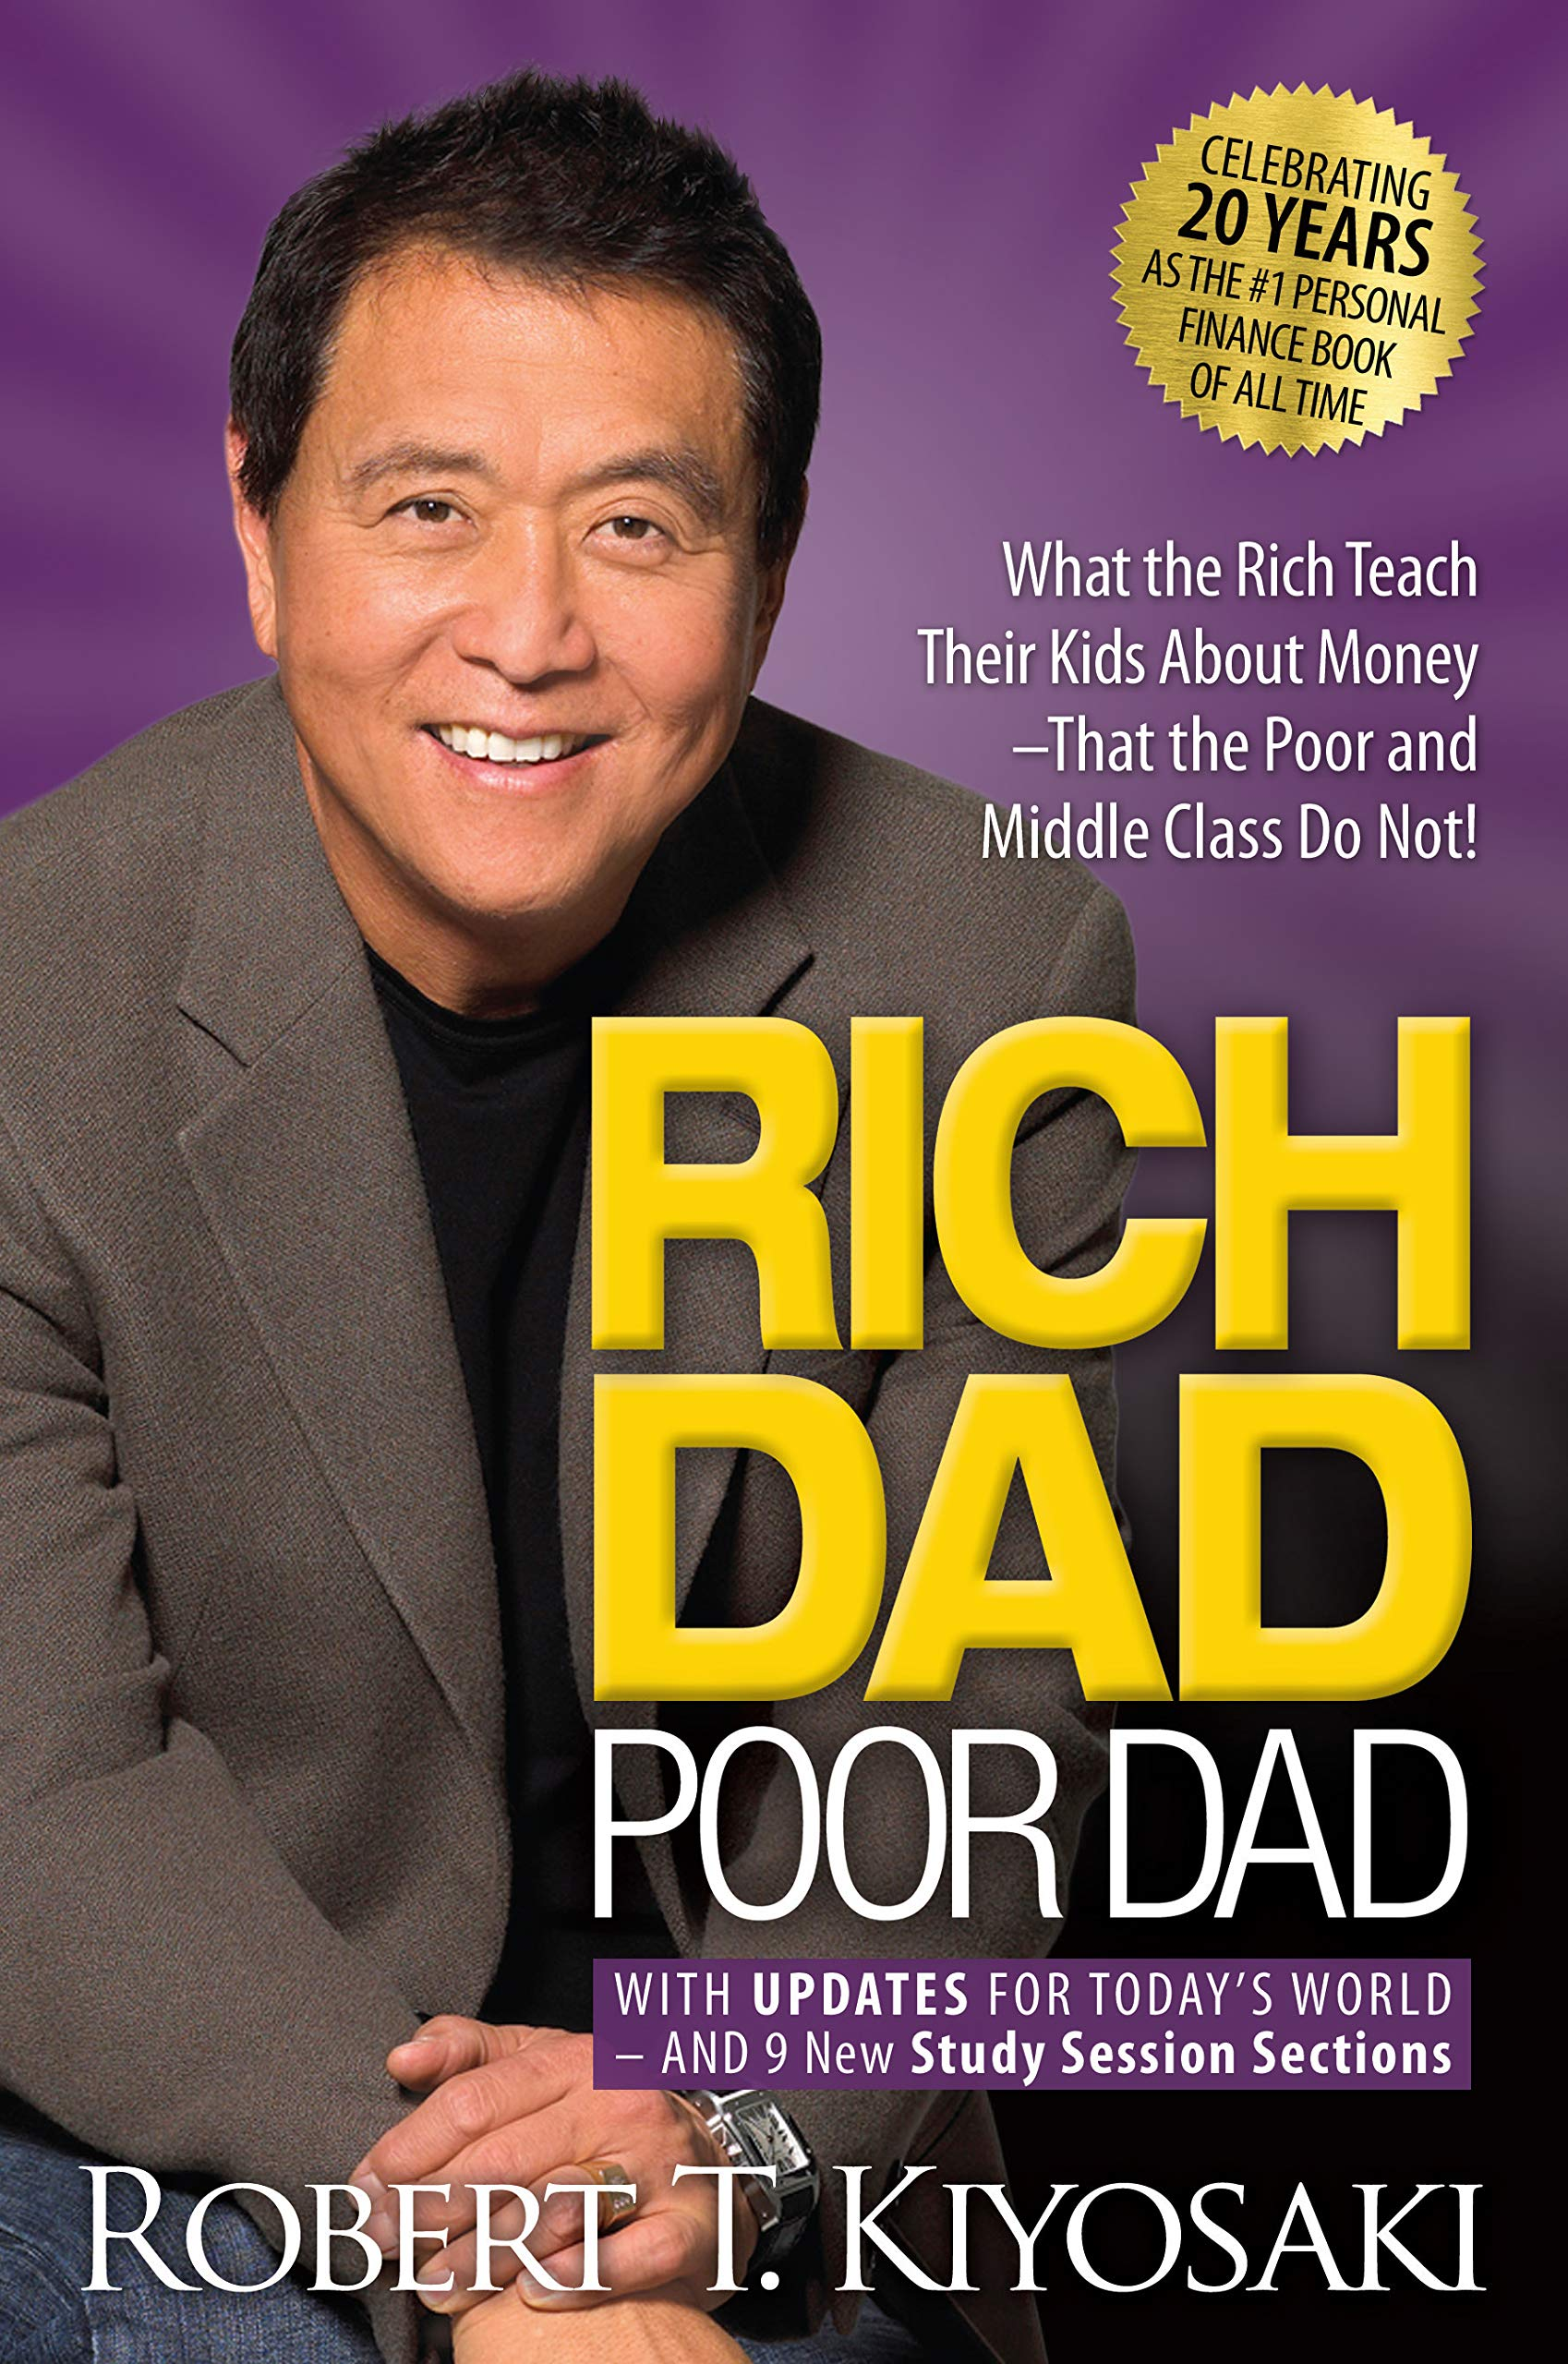 Is Rich Dad Poor Dad Still Relevant to You for Financial Freedom? You Decide.